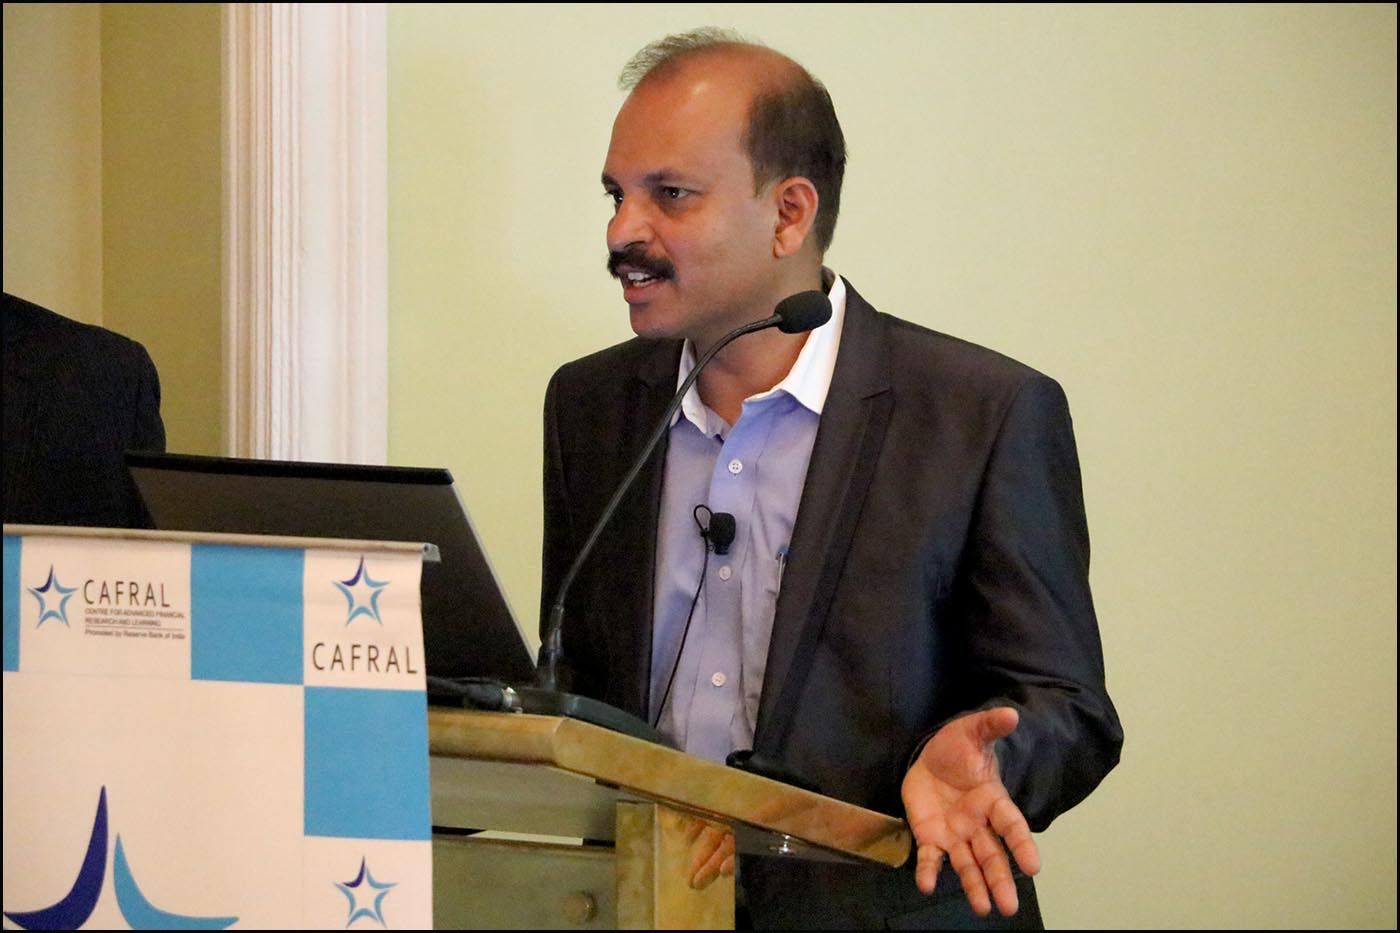 Babu Rao, General Counsel, Bajaj Finance Limited